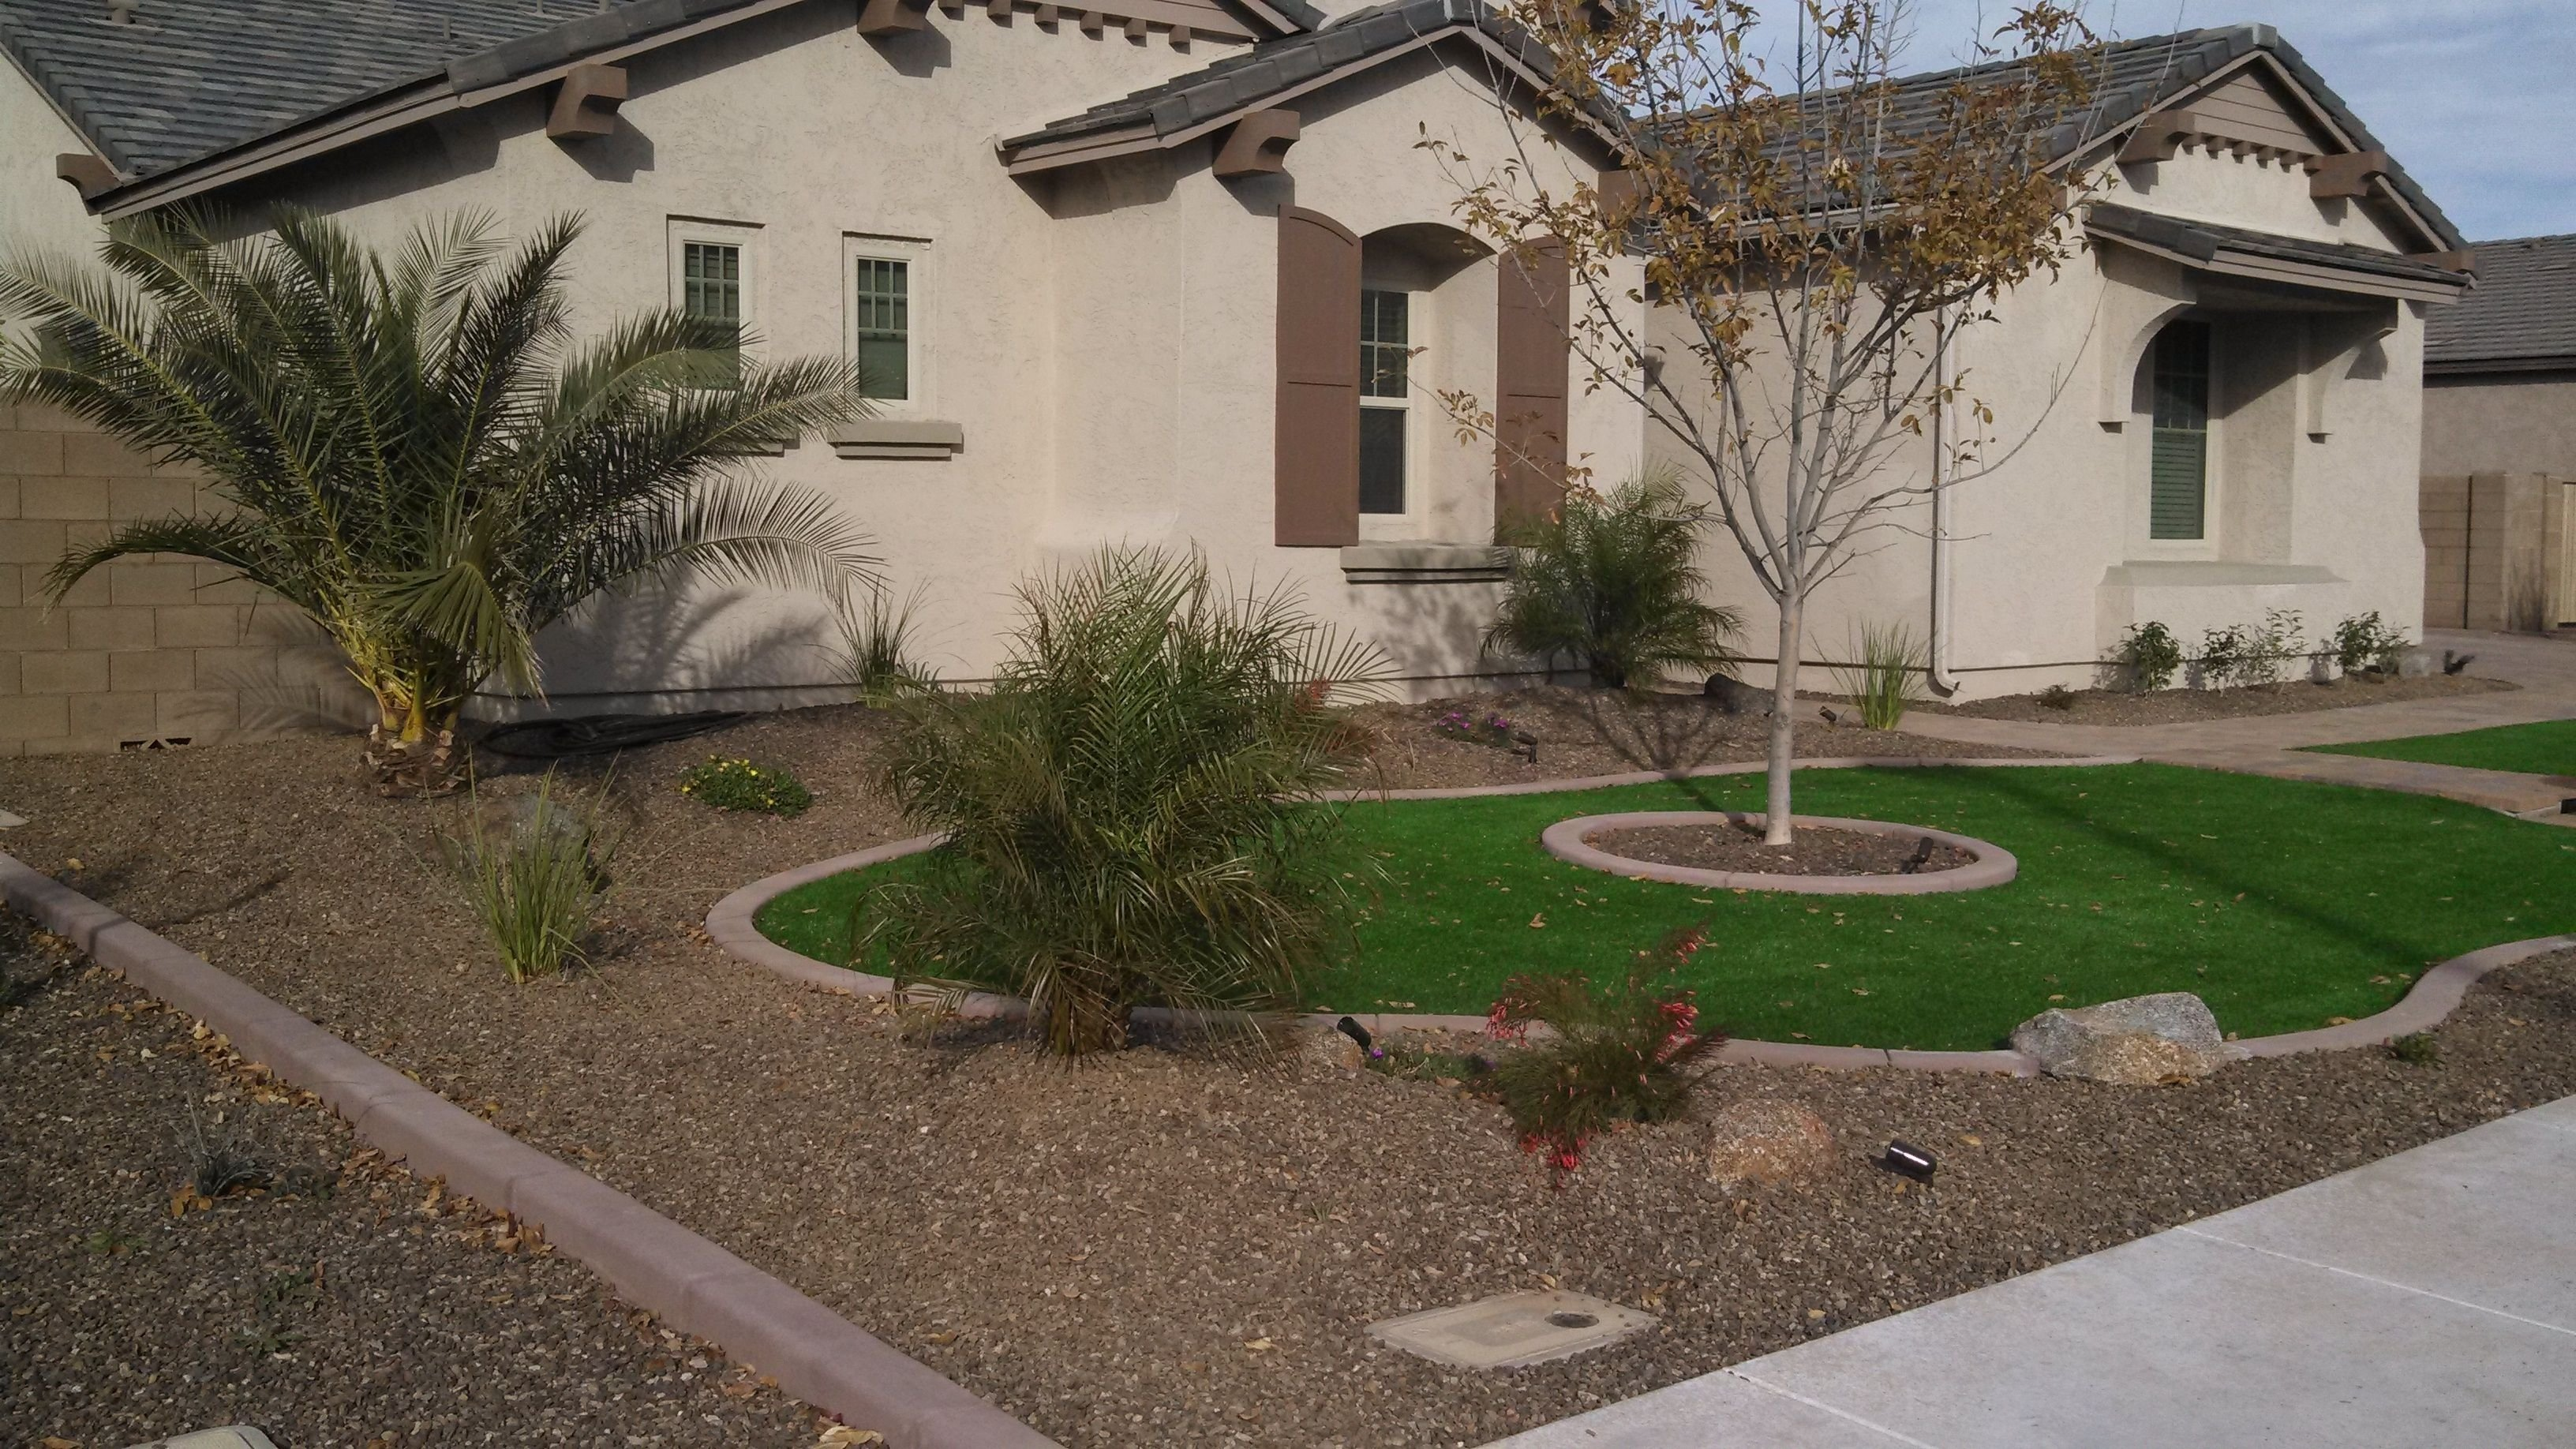 10 Most Popular Desert Landscaping Ideas For Front Yard desert landscaping ideas with pavers and artificial turf synthetic 2021